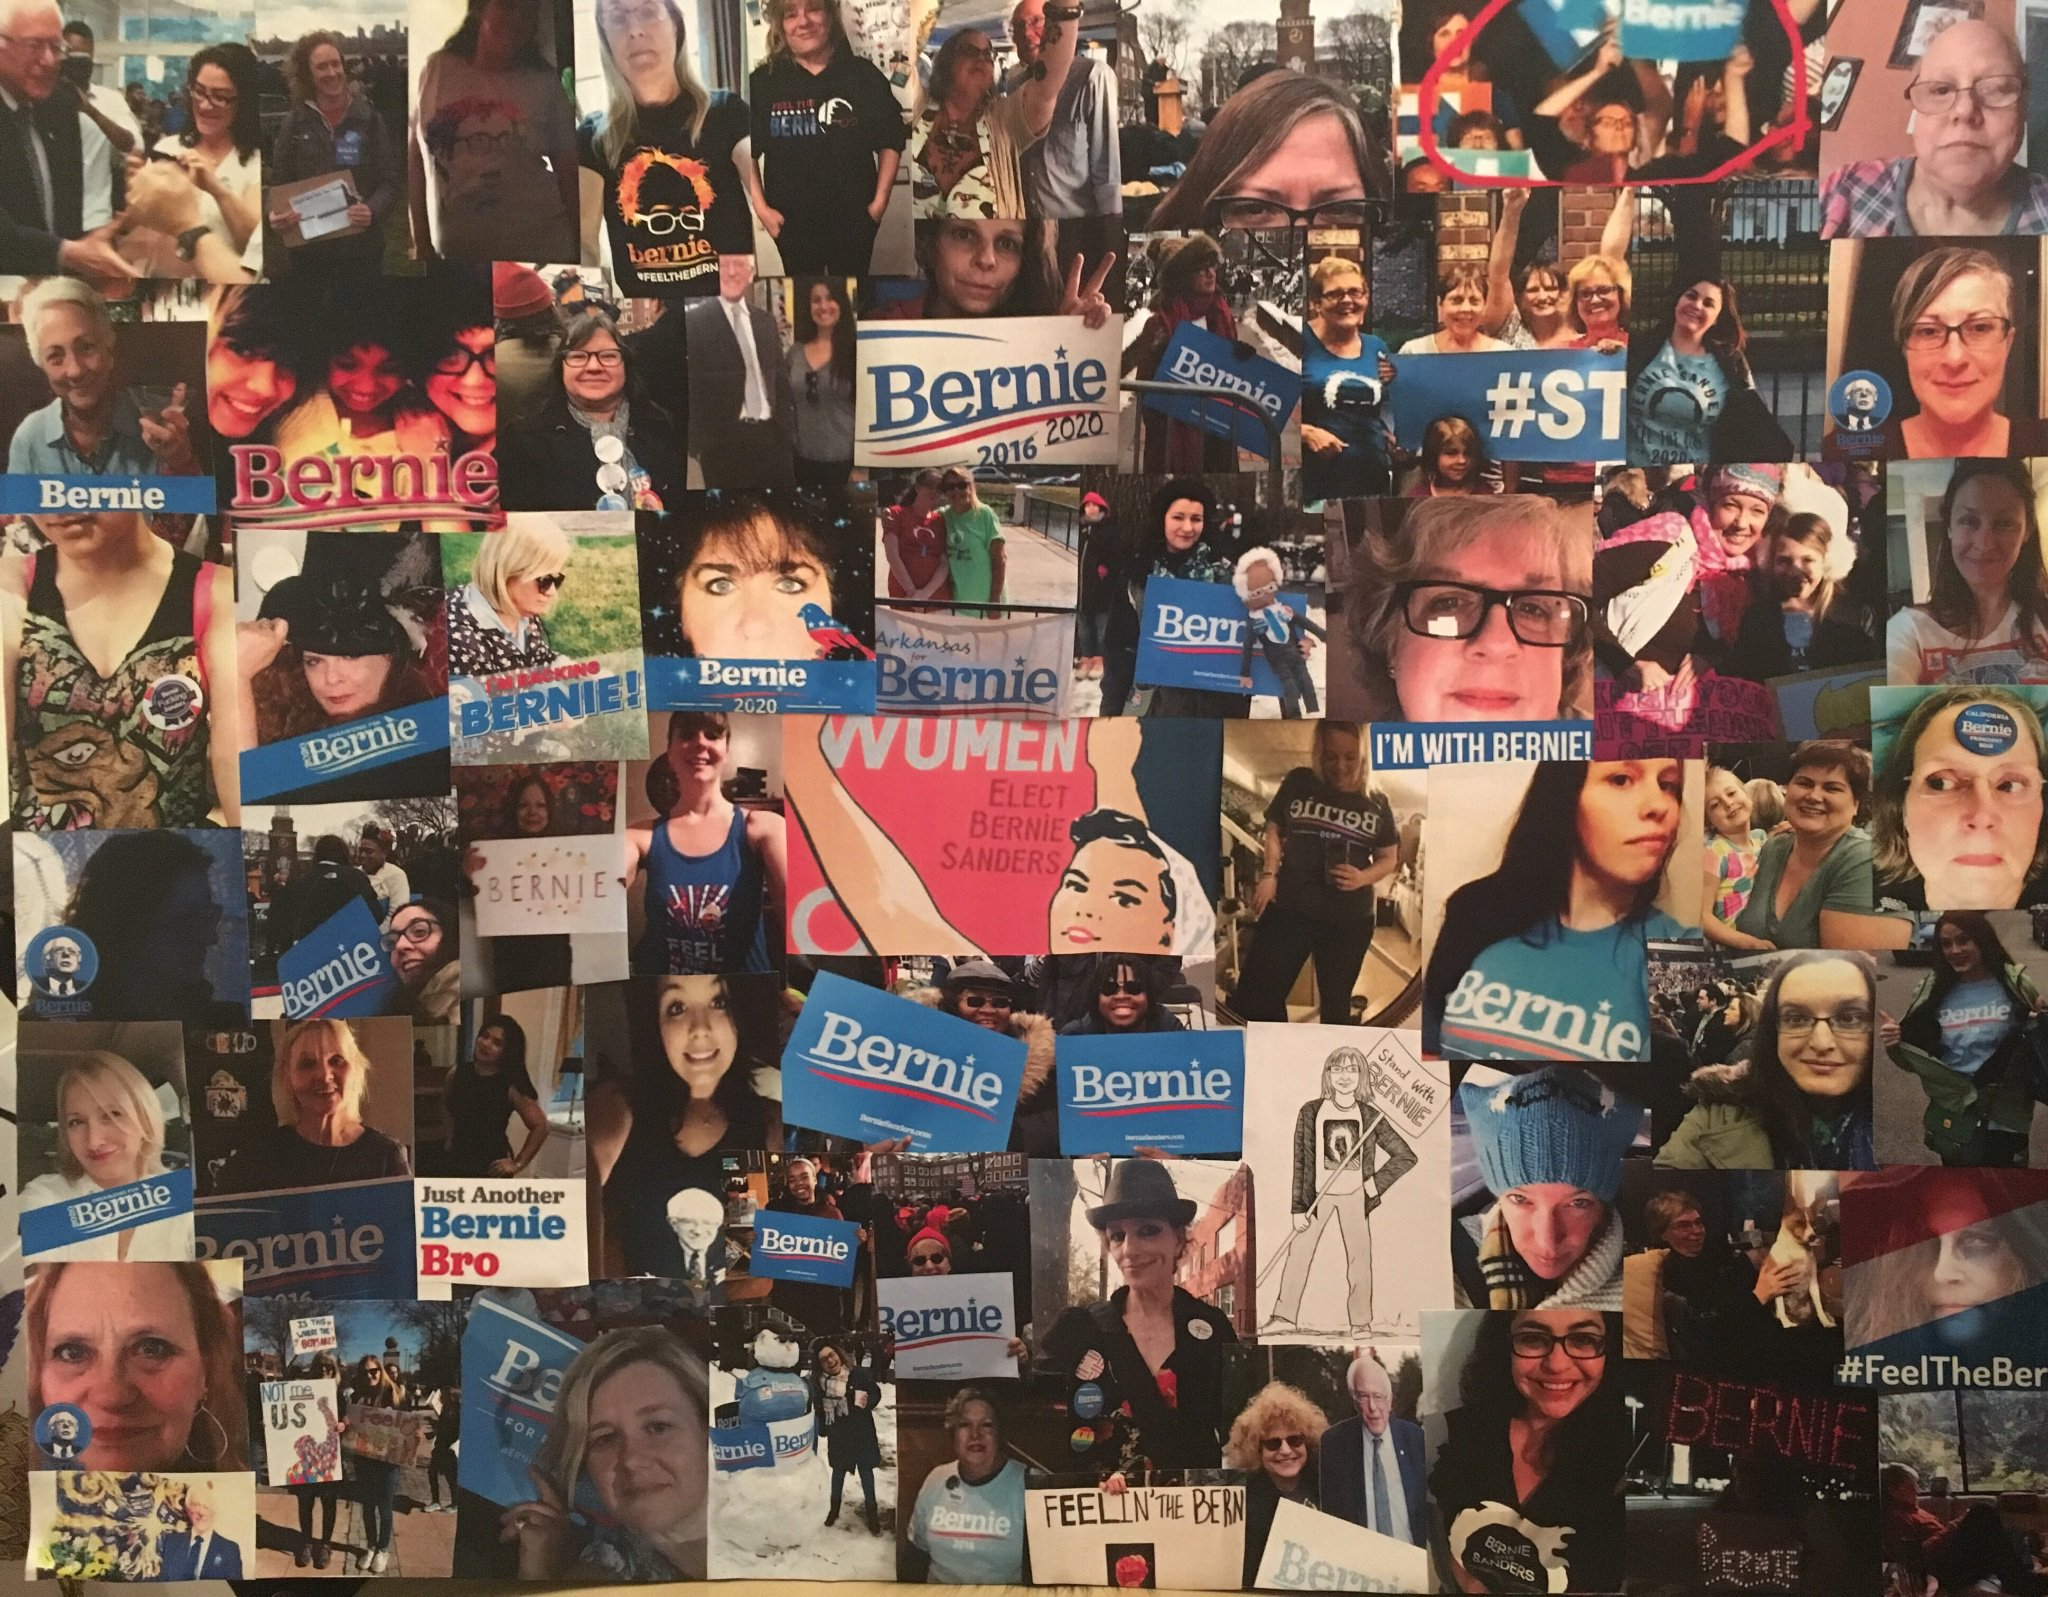 The 4TH Women For Bernie COLLAGE is Complete. Here Are